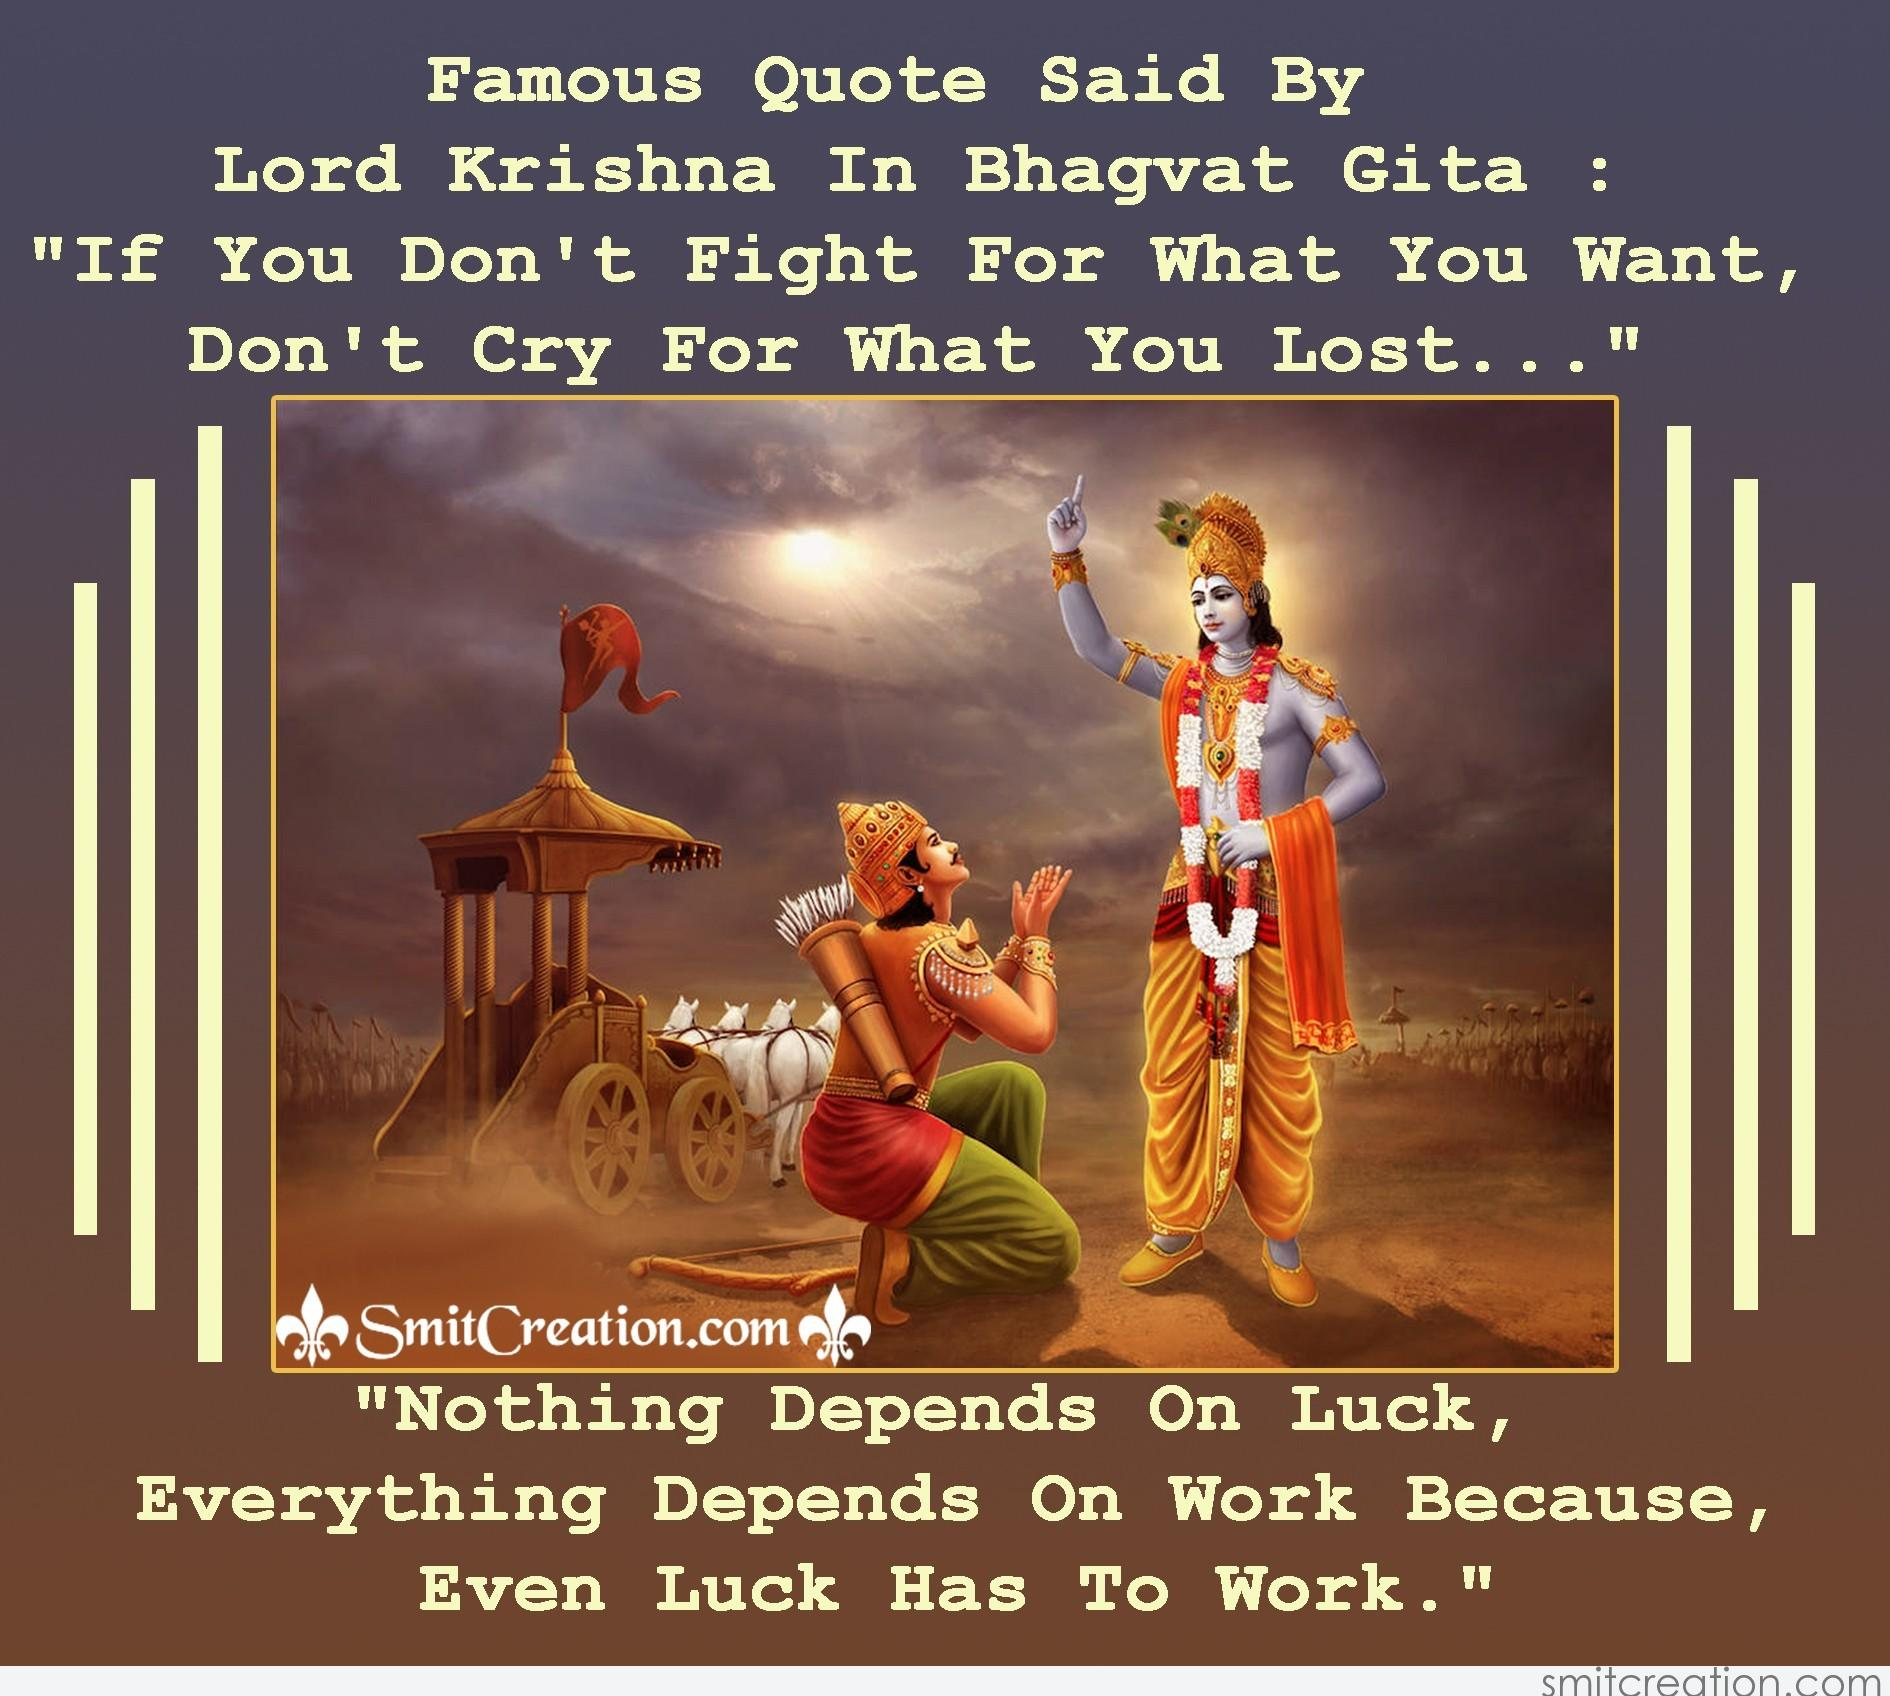 Lord Krishna Quotes Fight For What You Want  Smitcreation